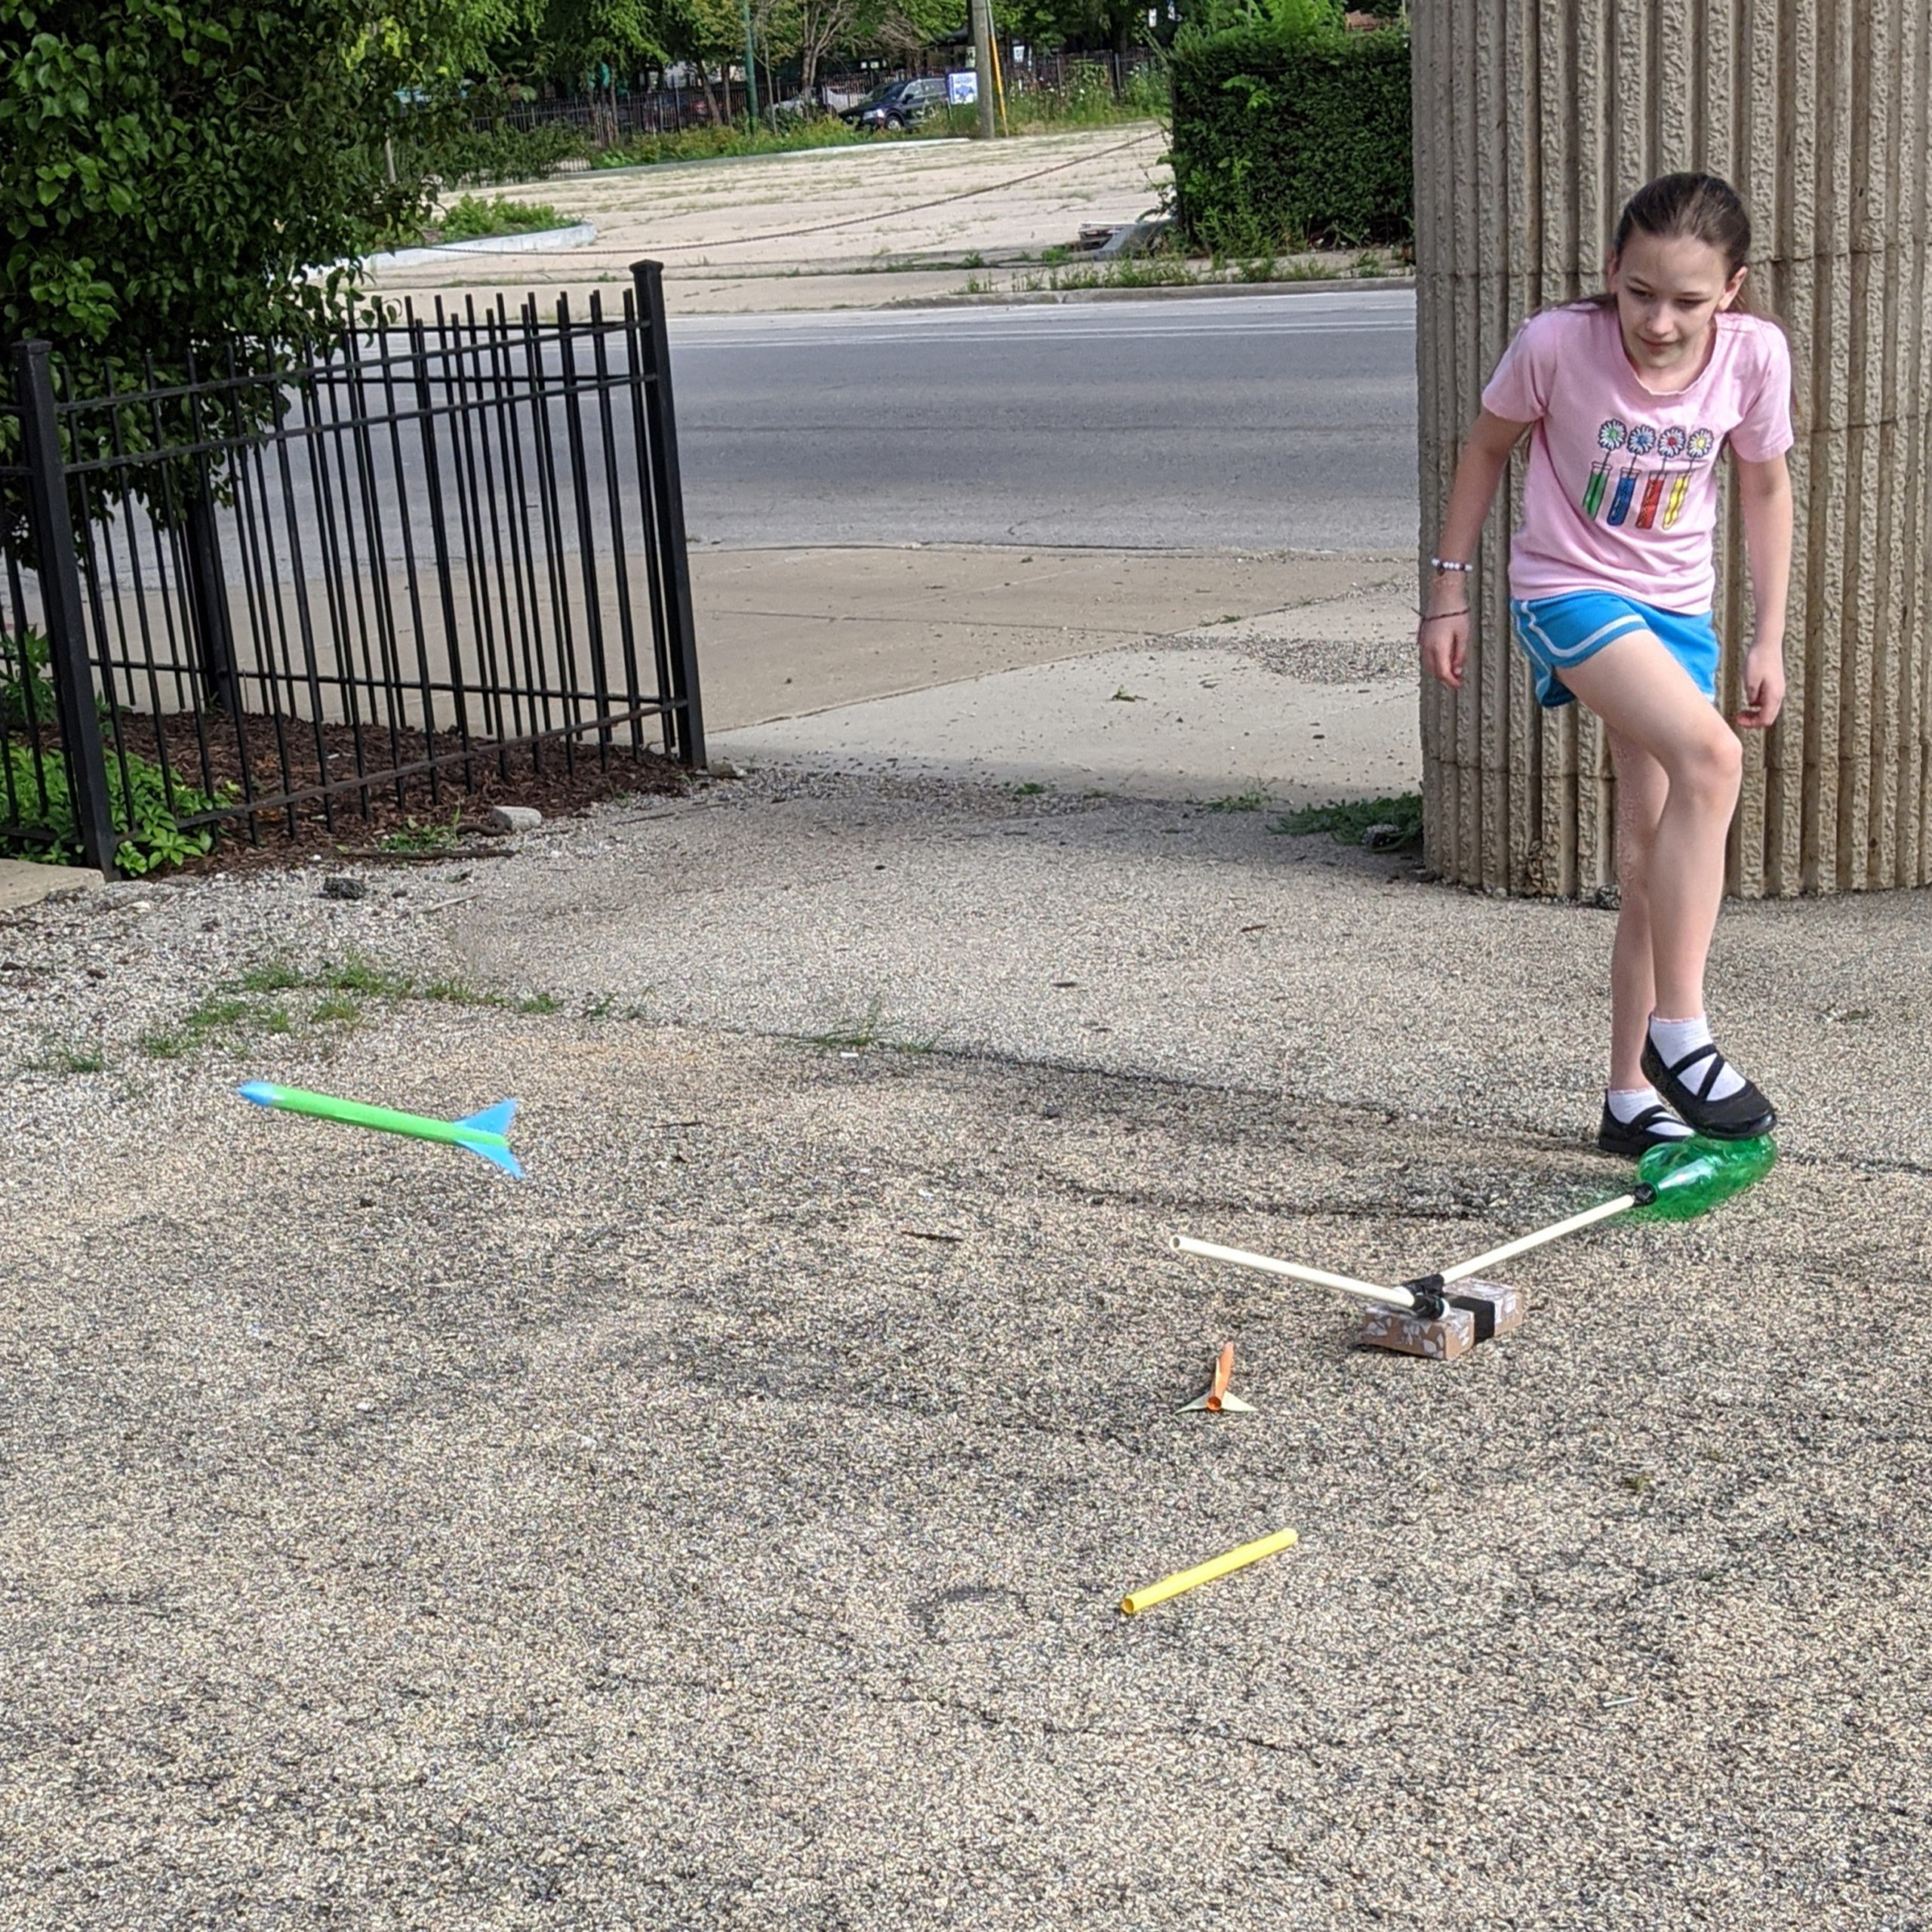 Create your own stomp rocket with supplies from around your house and launch it outside!